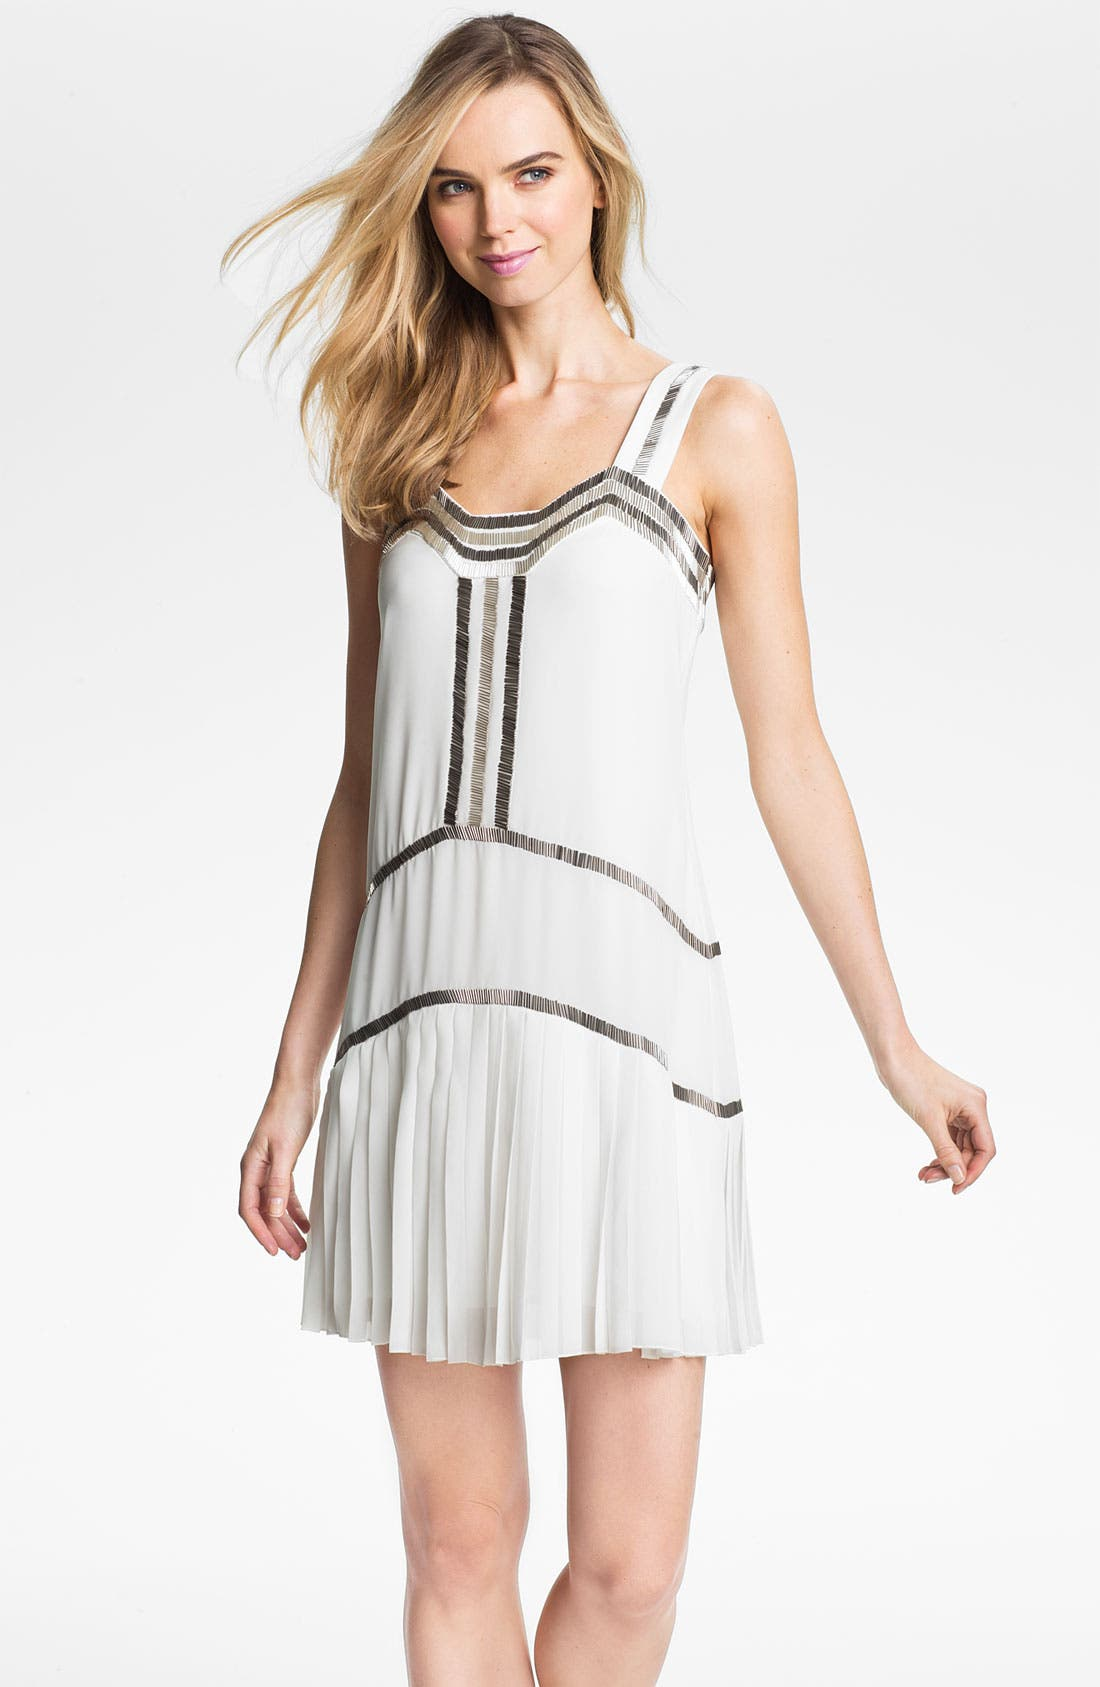 Alternate Image 1 Selected - Vince Camuto Metallic Bead Trim Chiffon Shift Dress